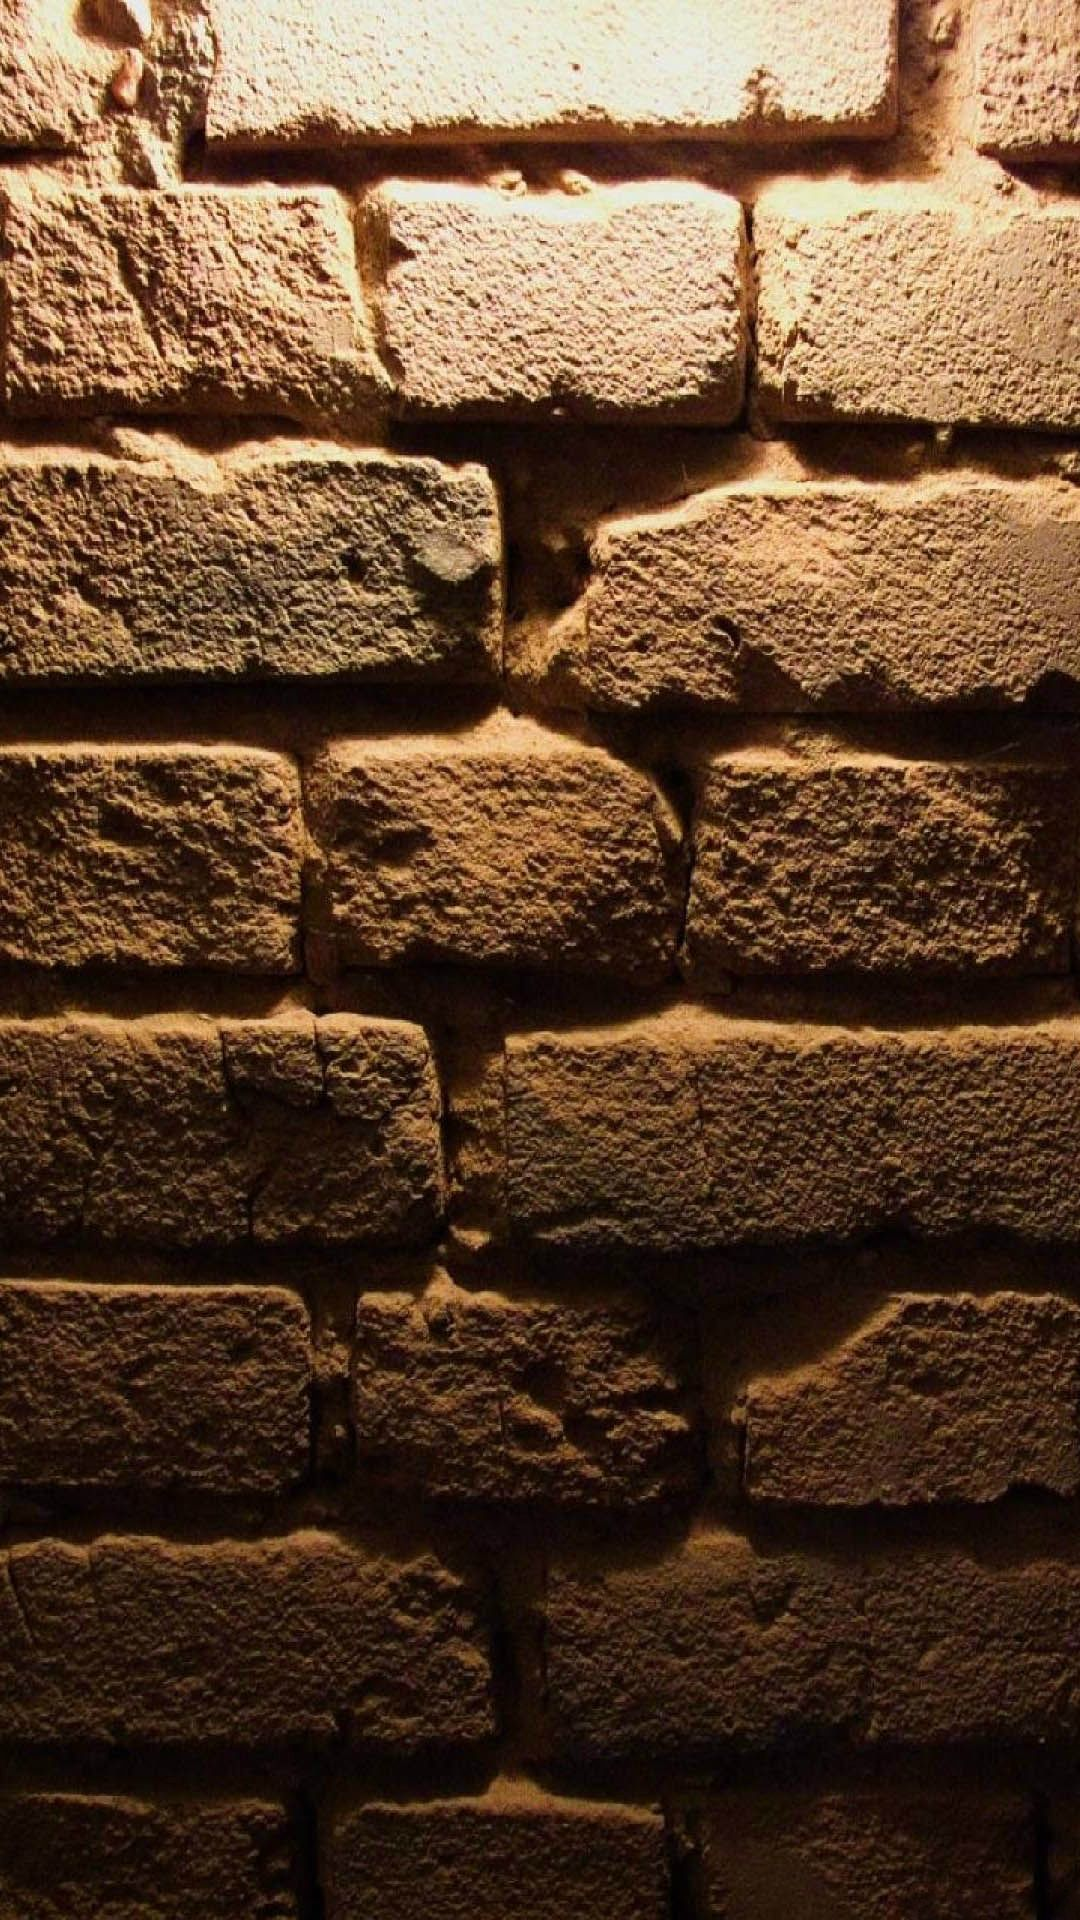 Old Brick Wall Texture iPhone 8 Wallpapers (With images